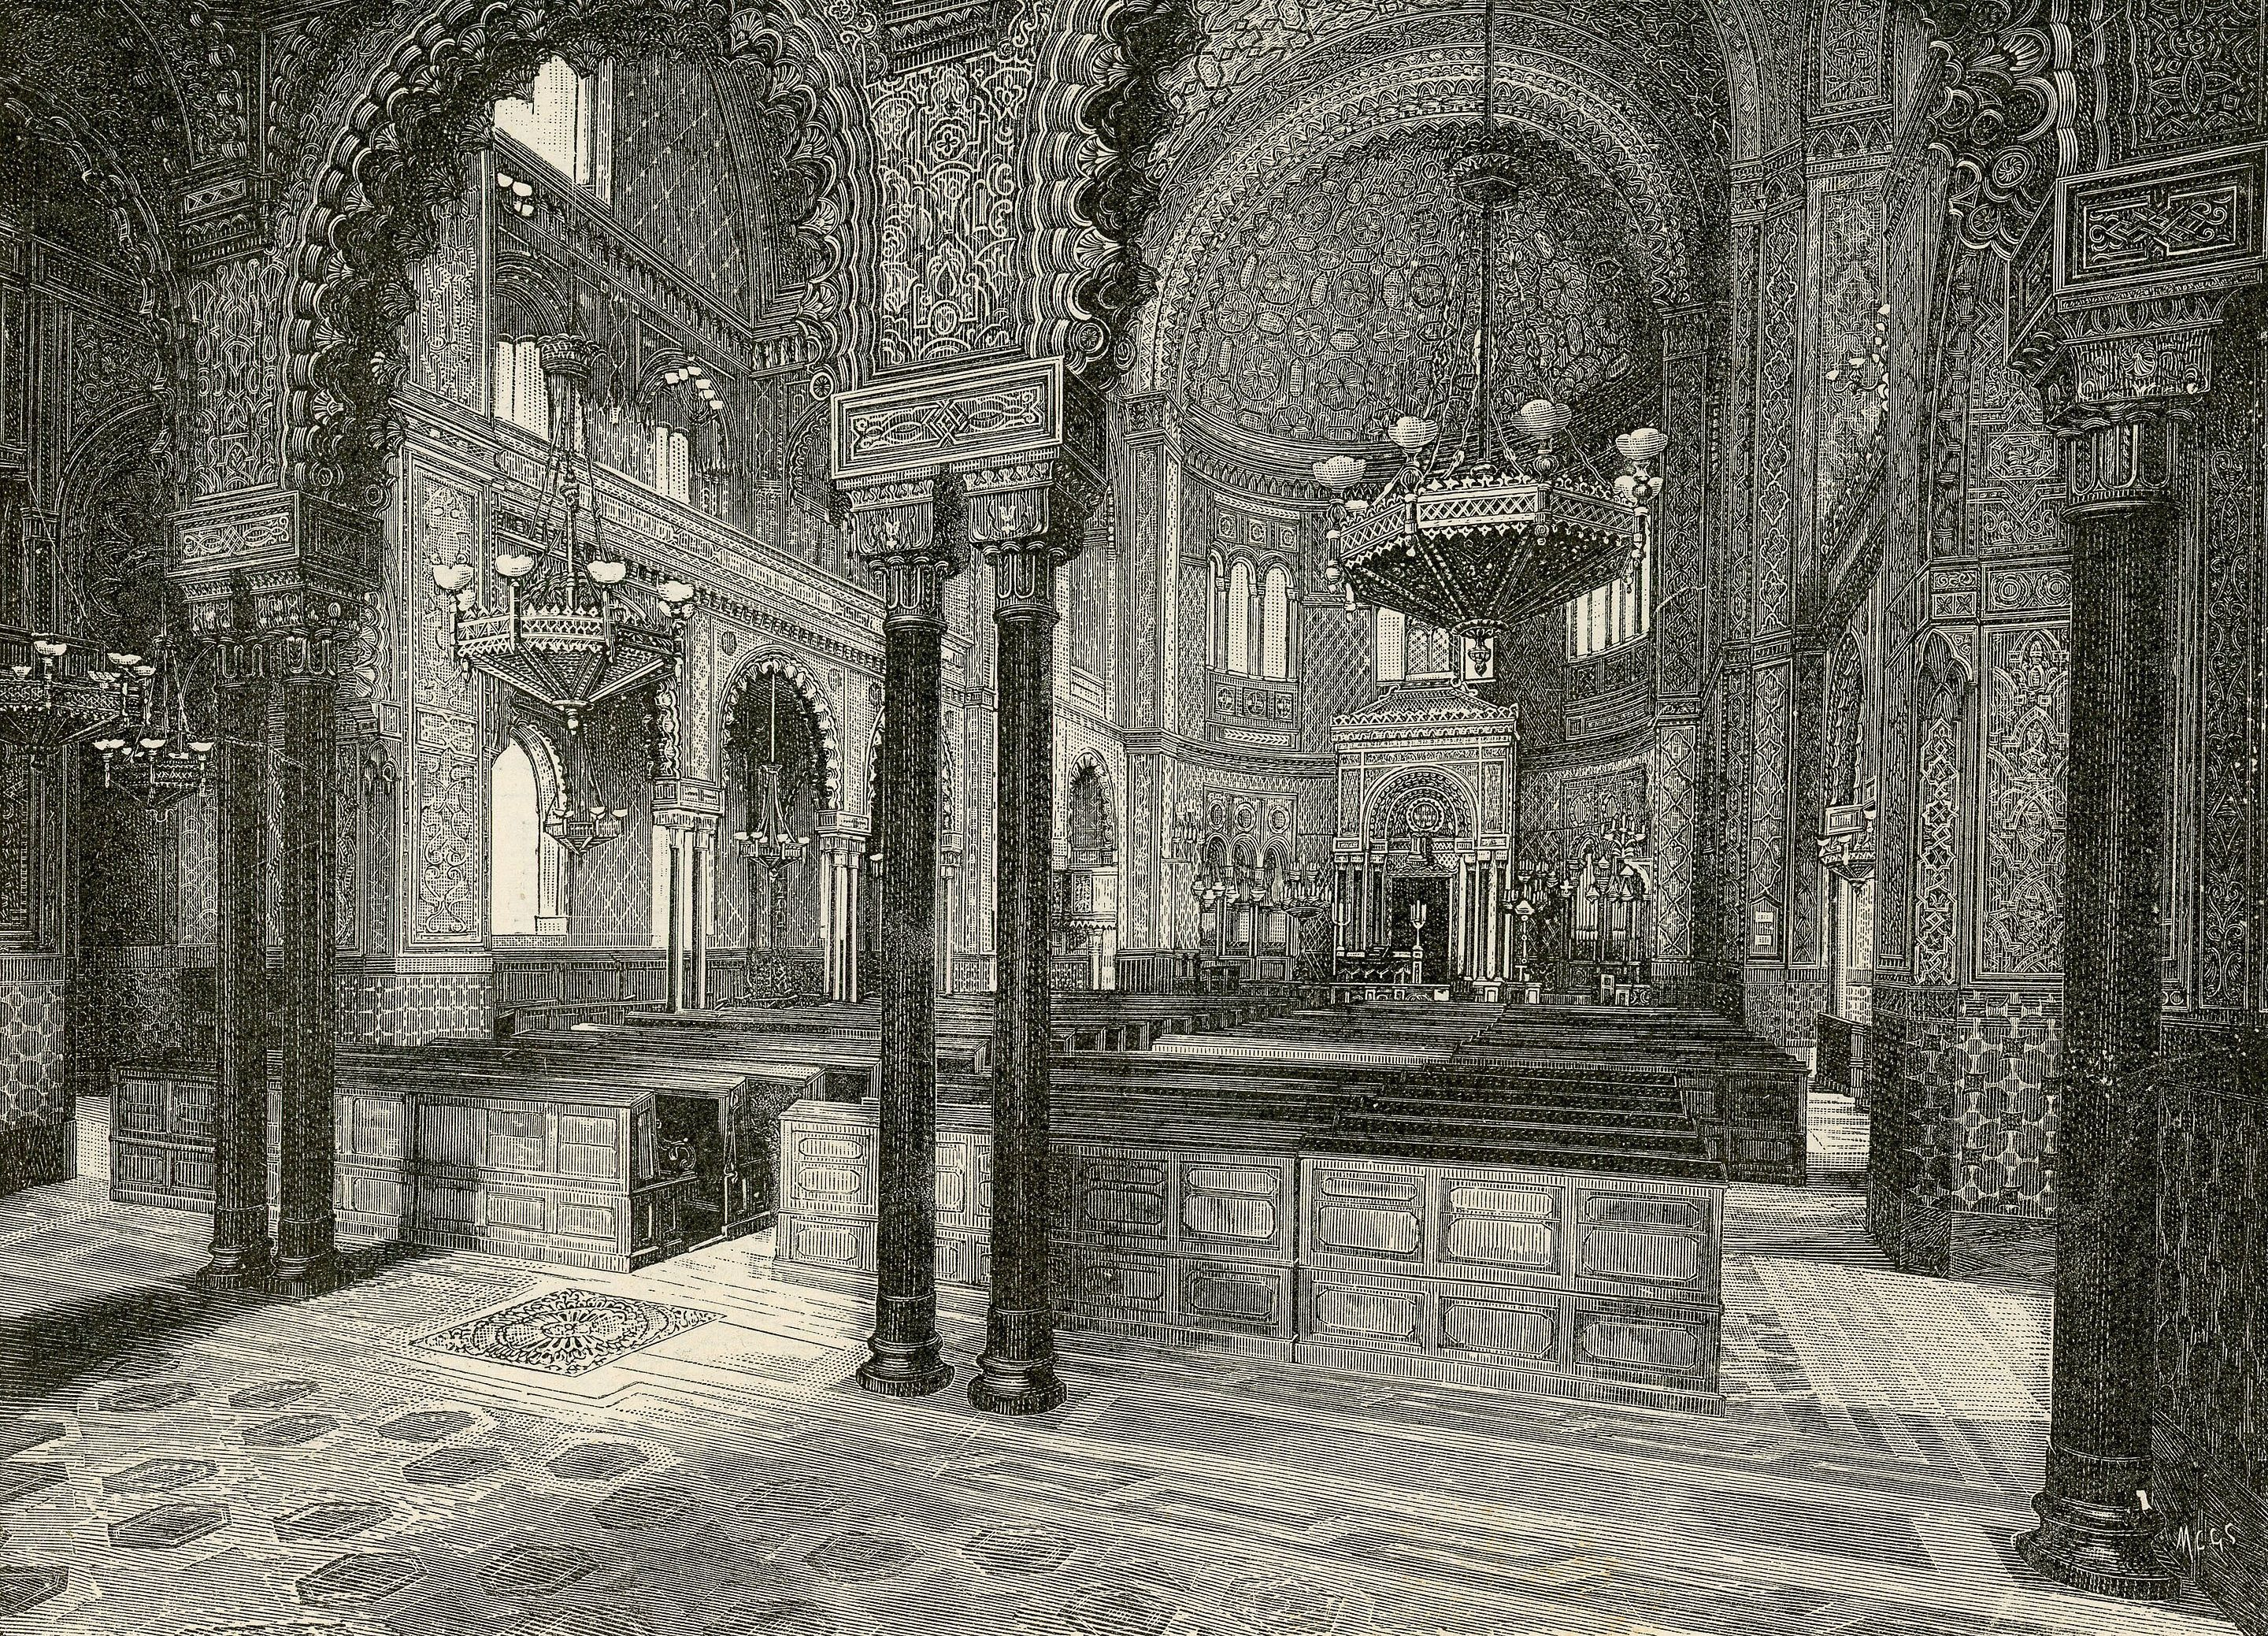 Interior of the Great Synagogue of Florence, Strafforello Gustavo, 1894